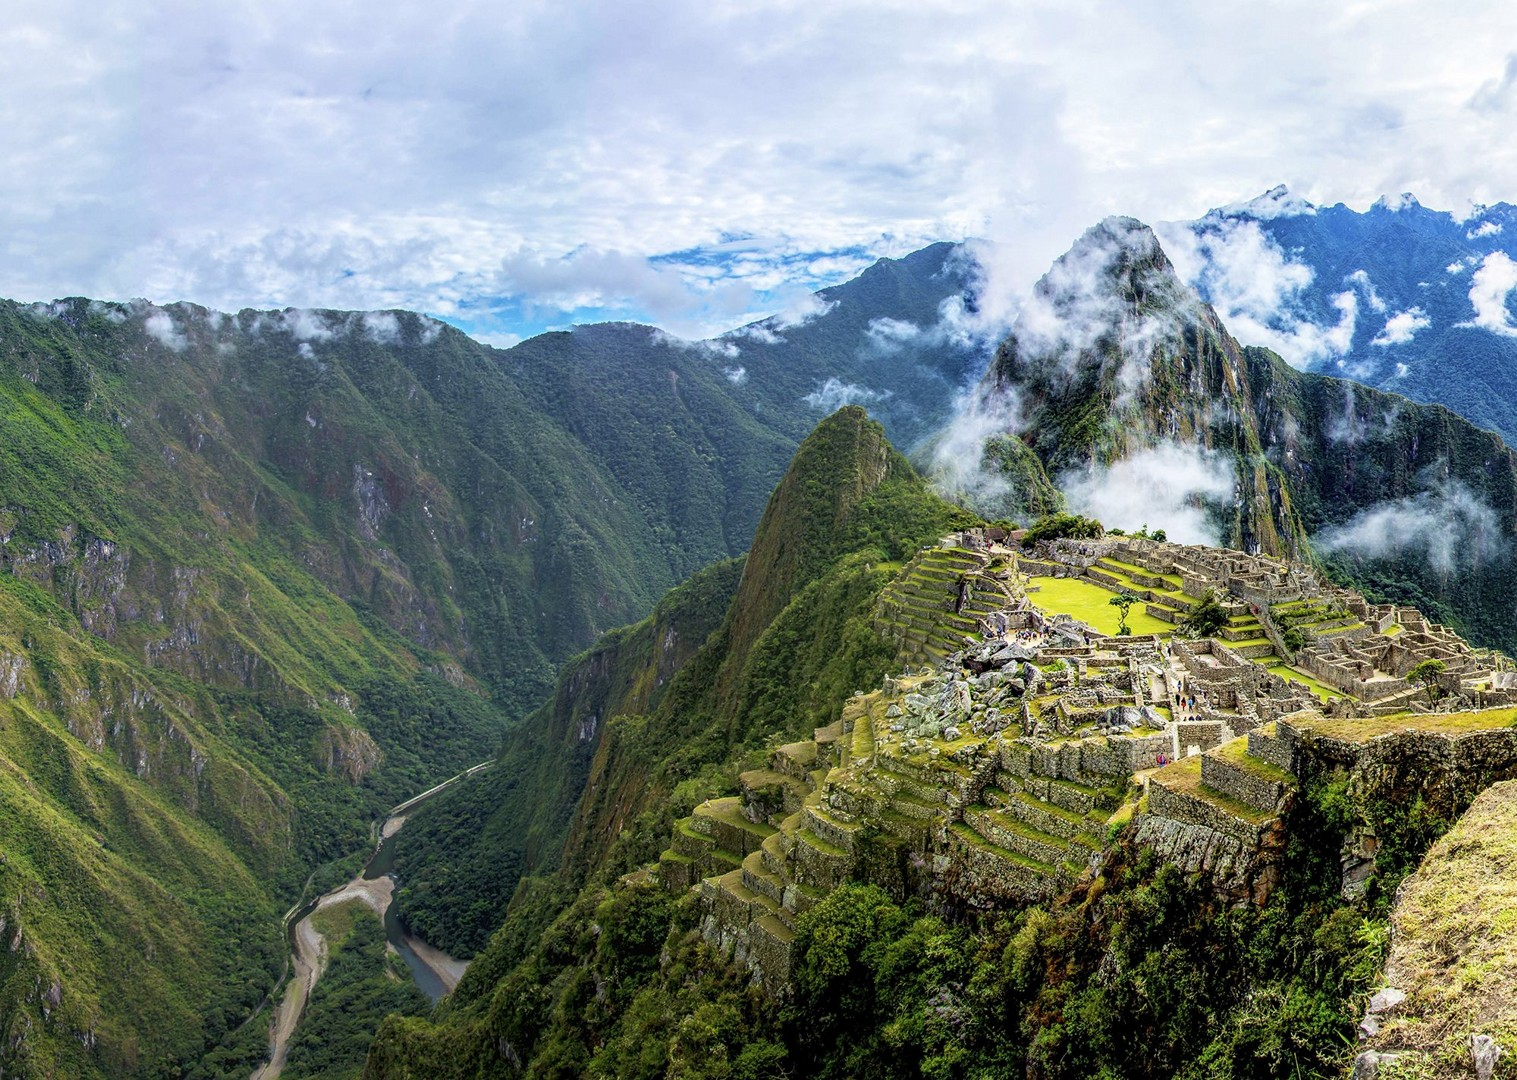 family-cycling-holiday-in-peru-skedaddle.jpg - Peru - Andean Adventure - Guided Family Cycling Holiday - Family Cycling